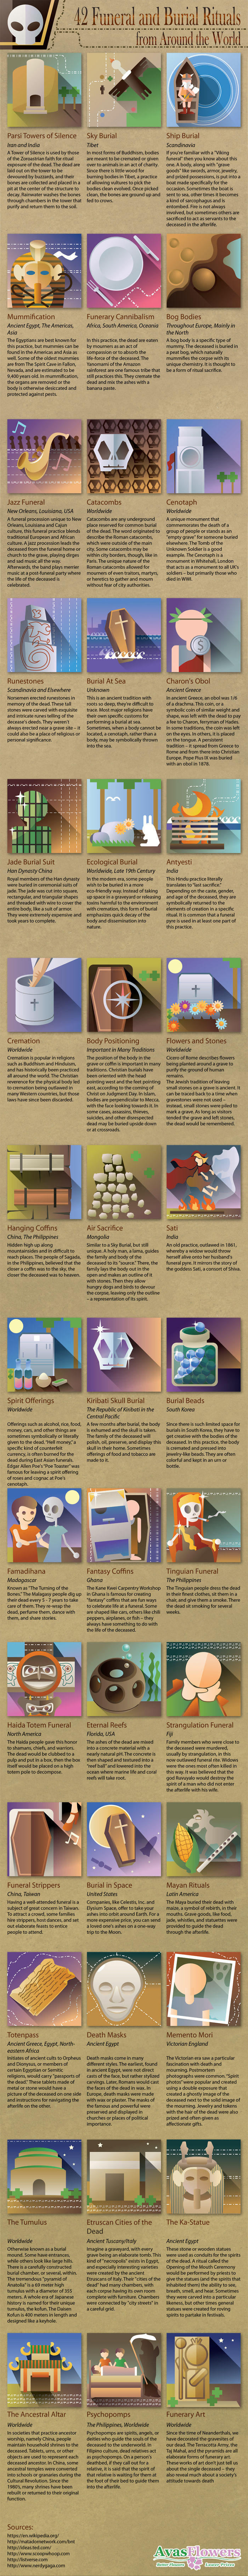 The Funeral And Burial Rituals Of The World